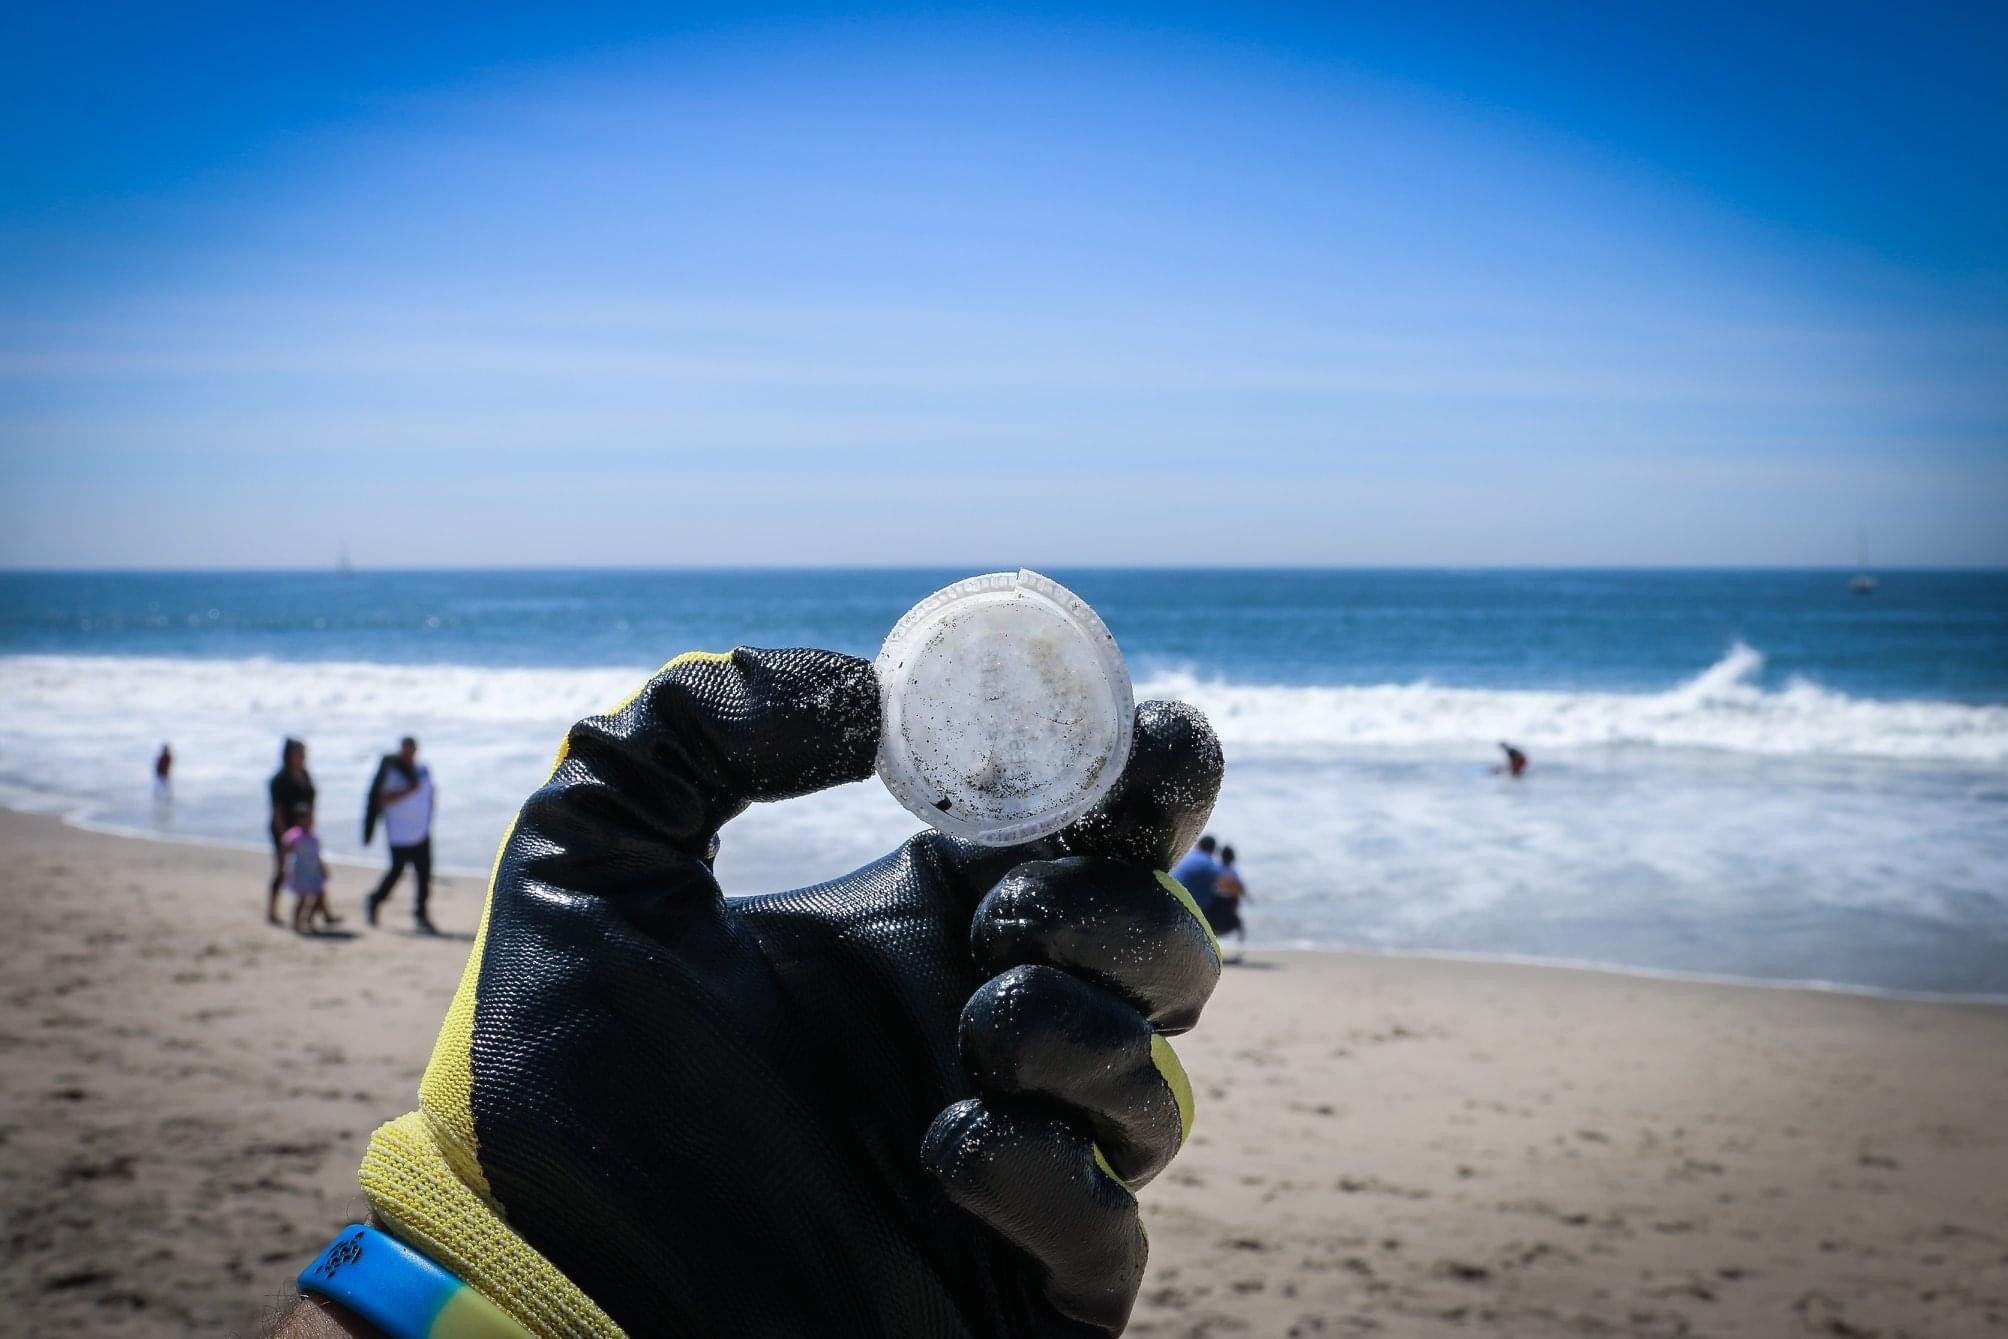 Plastic Bottle Cap found at California Beach Cleanup